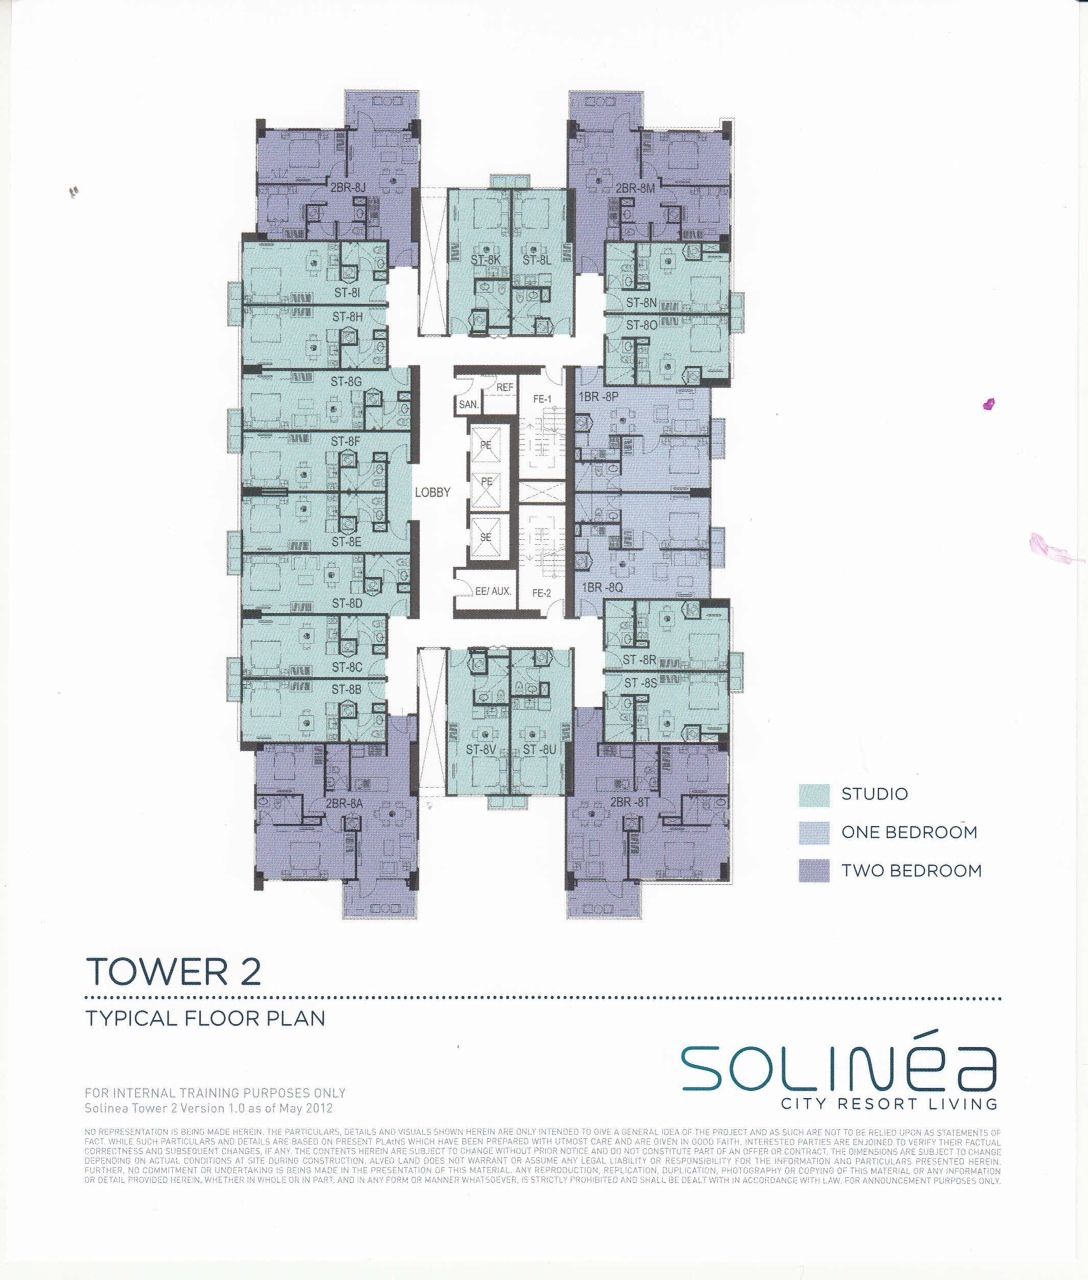 Solinea Tower 2 - Typical Floor Plan